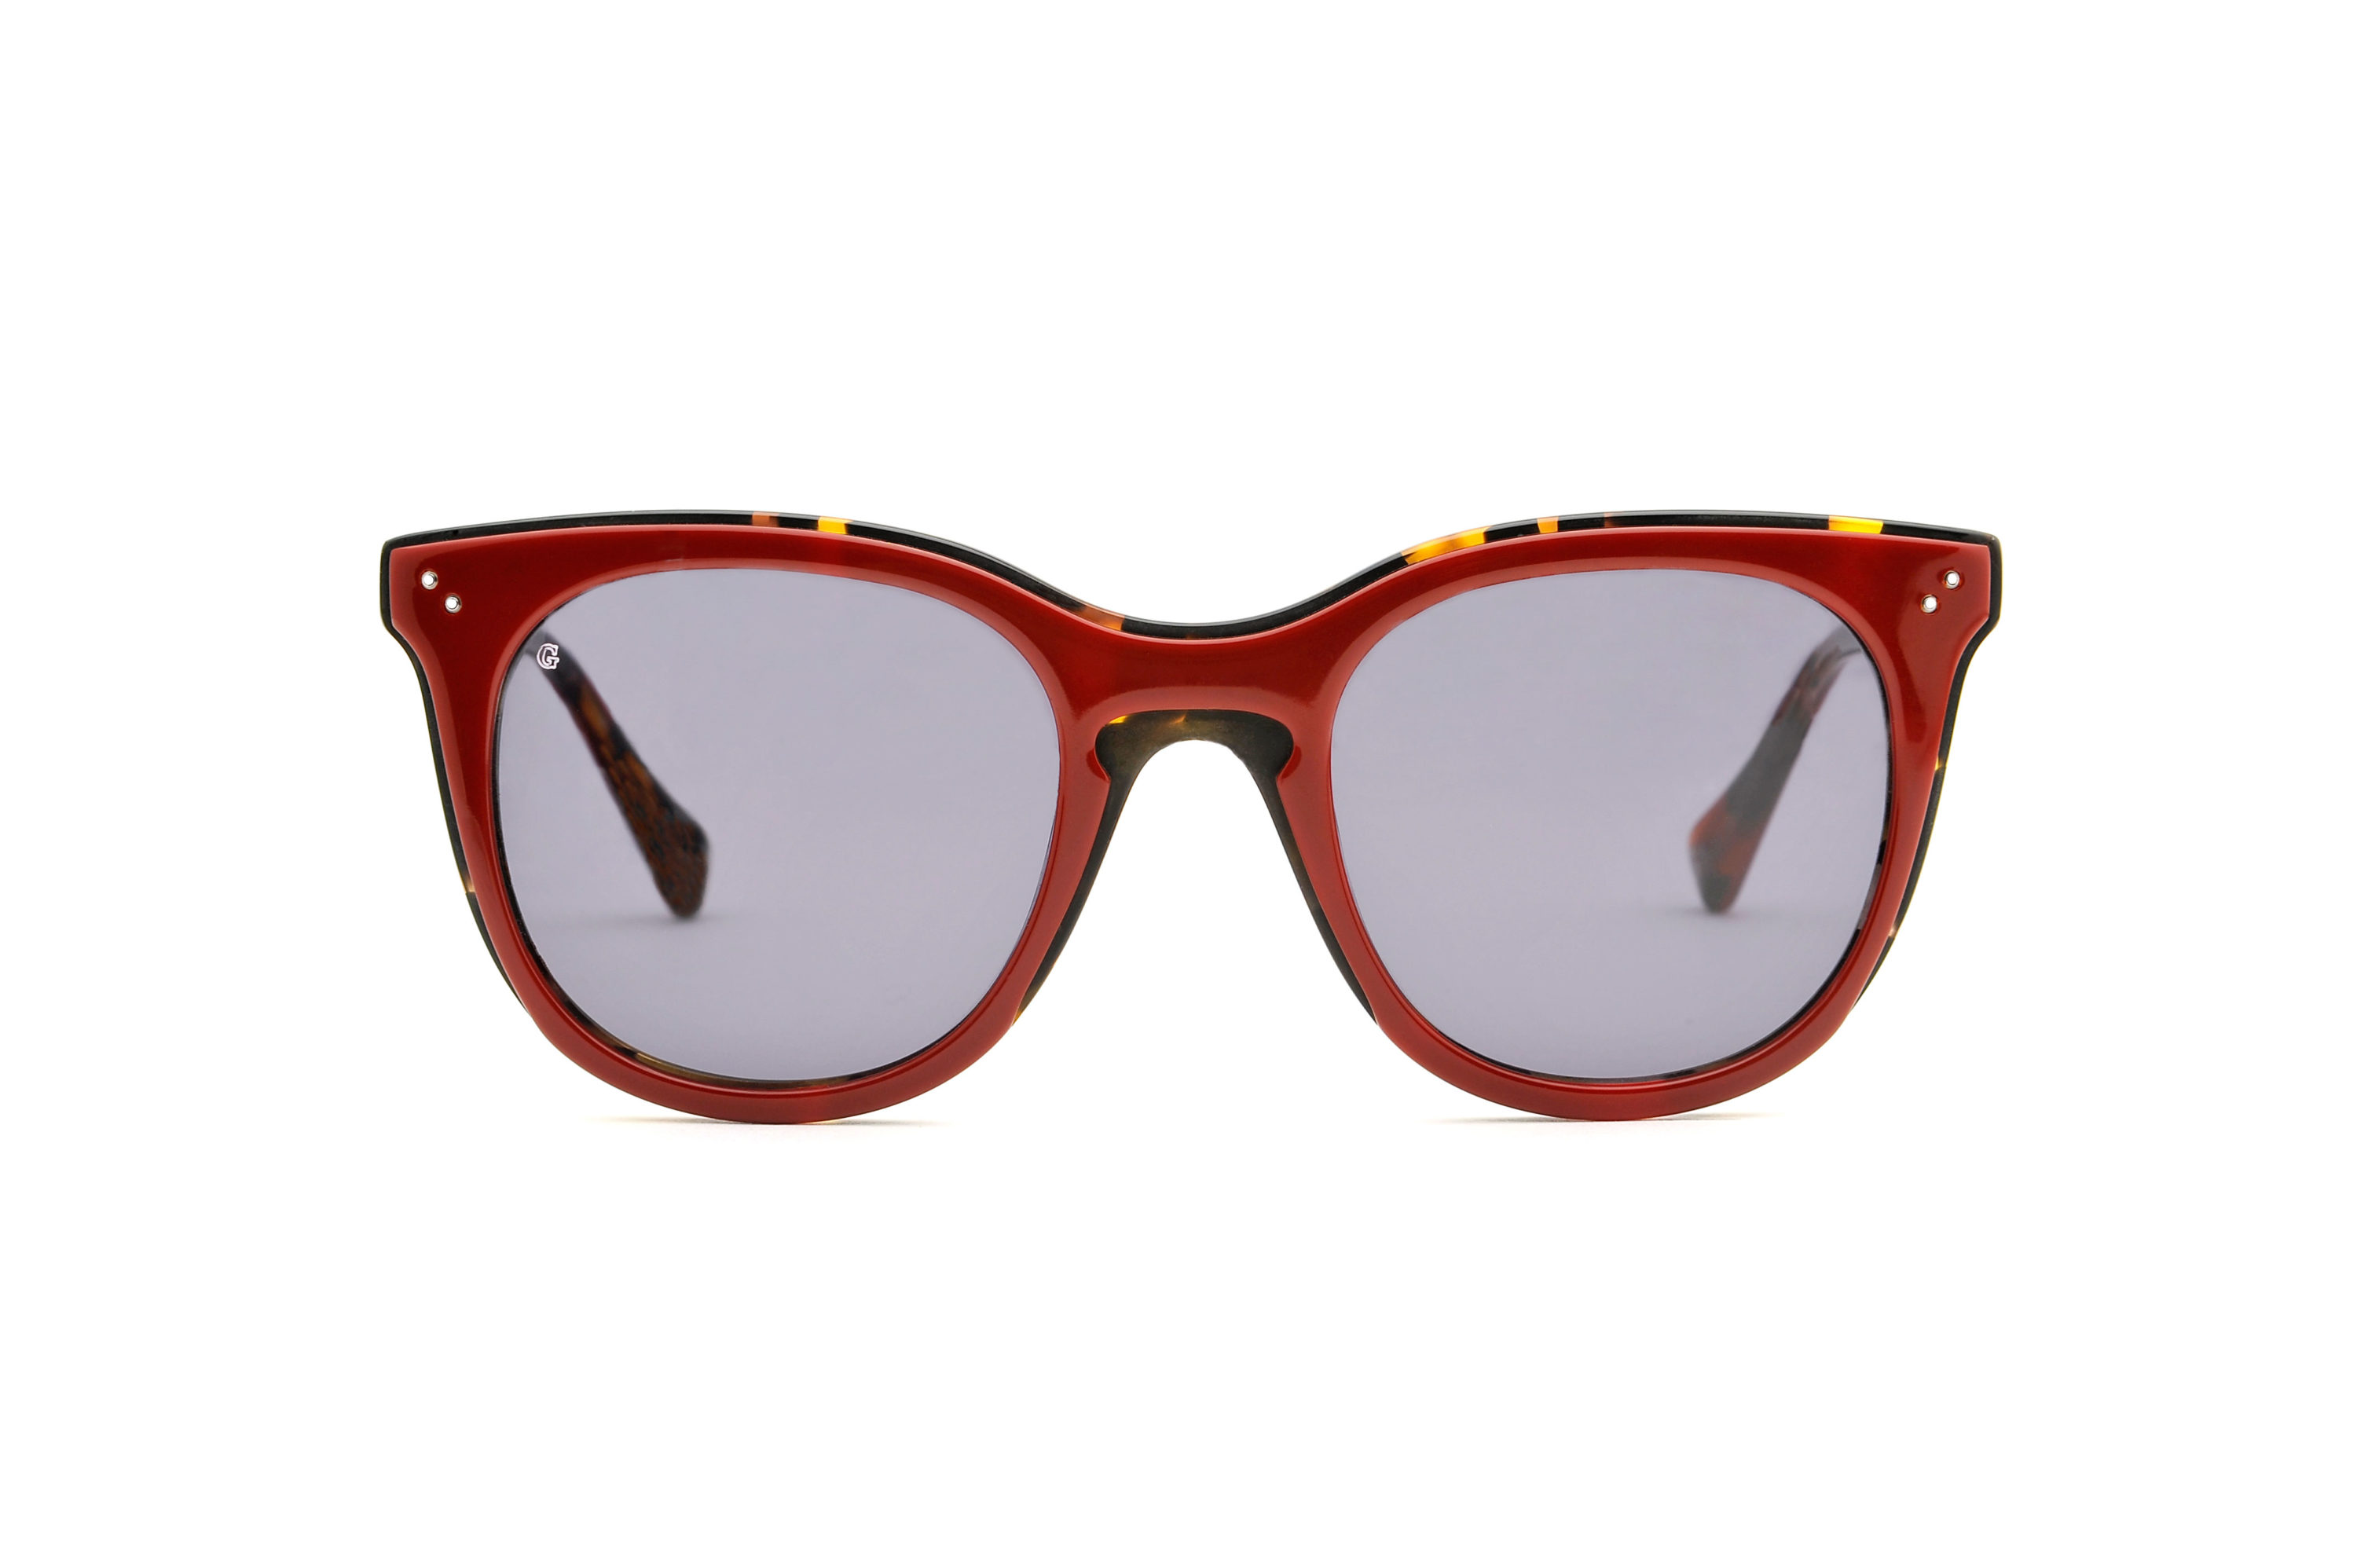 Nathalie acetate cat eye red sunglasses by GIGI Studios